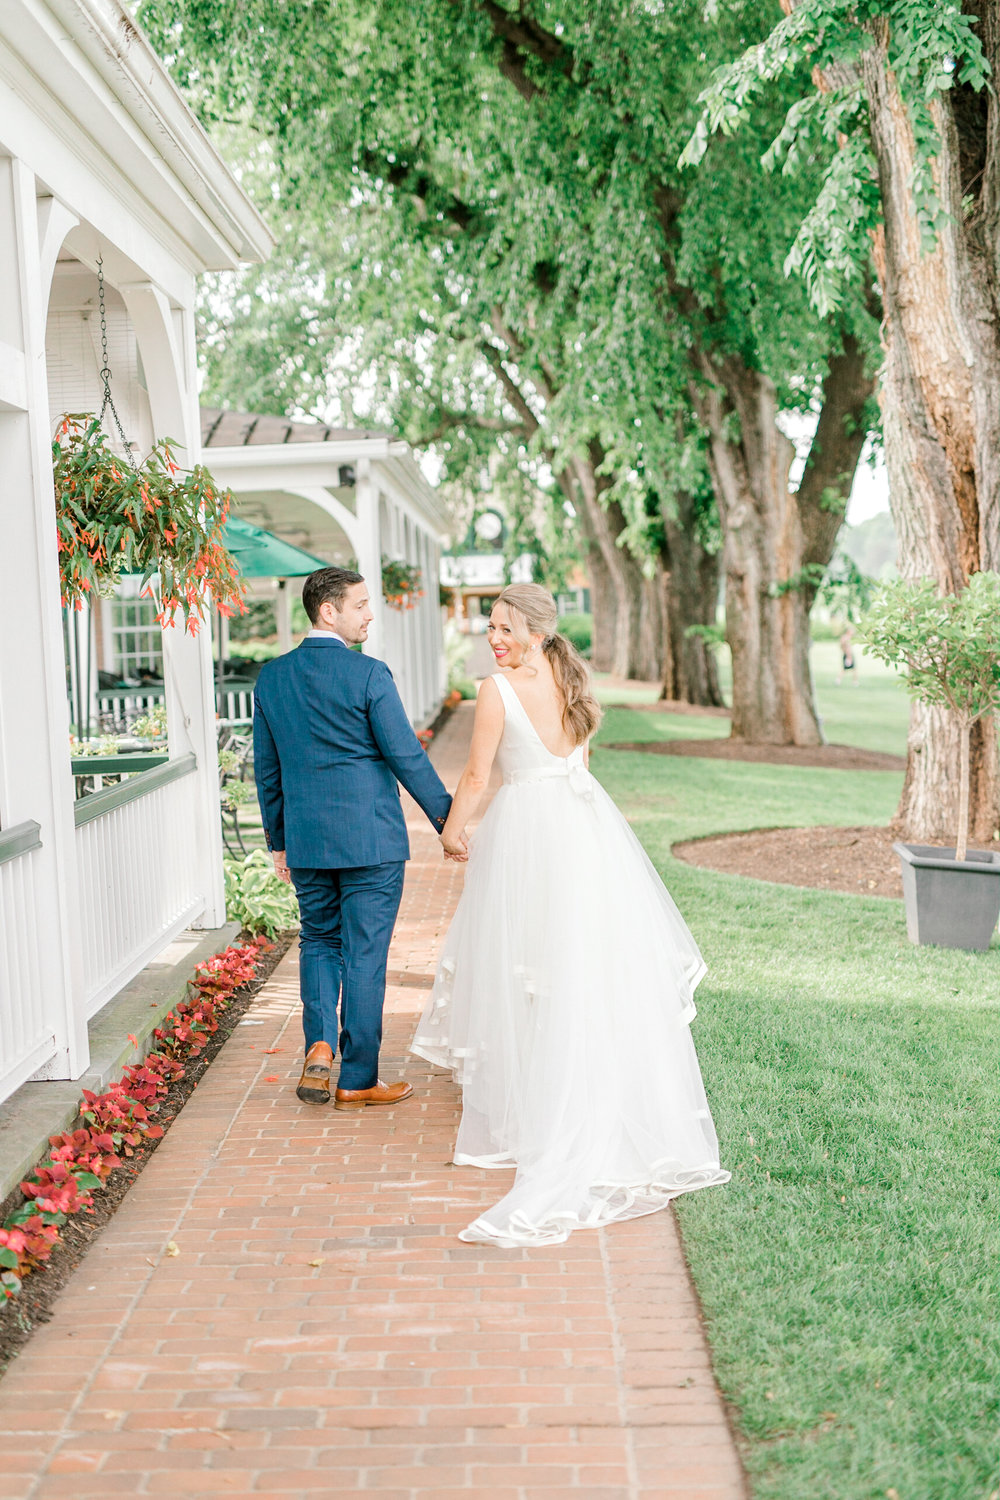 Kerry and Bill smile stroll along the brick path at the Baltimore Country Club on their Italian themed wedding day.